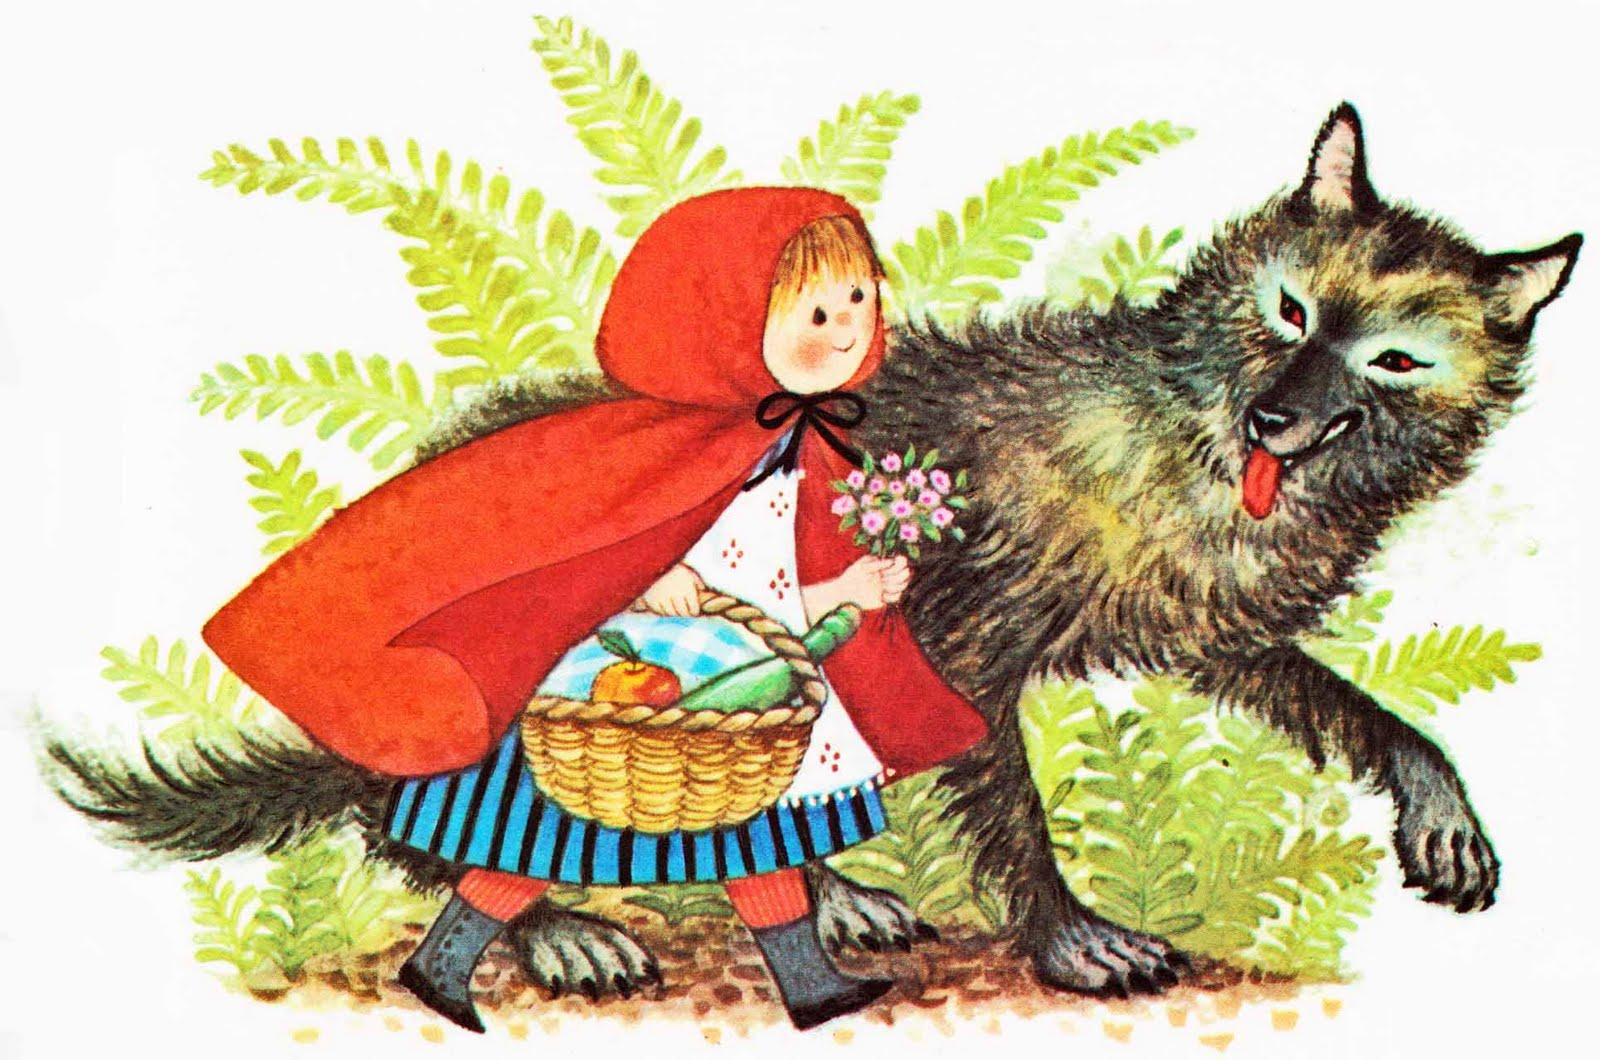 fables and fairytales From hans christian andersen to angela carter's bloody chamber, marina warner picks her favourite fairytales skip to main content  the top 10 fairytales.